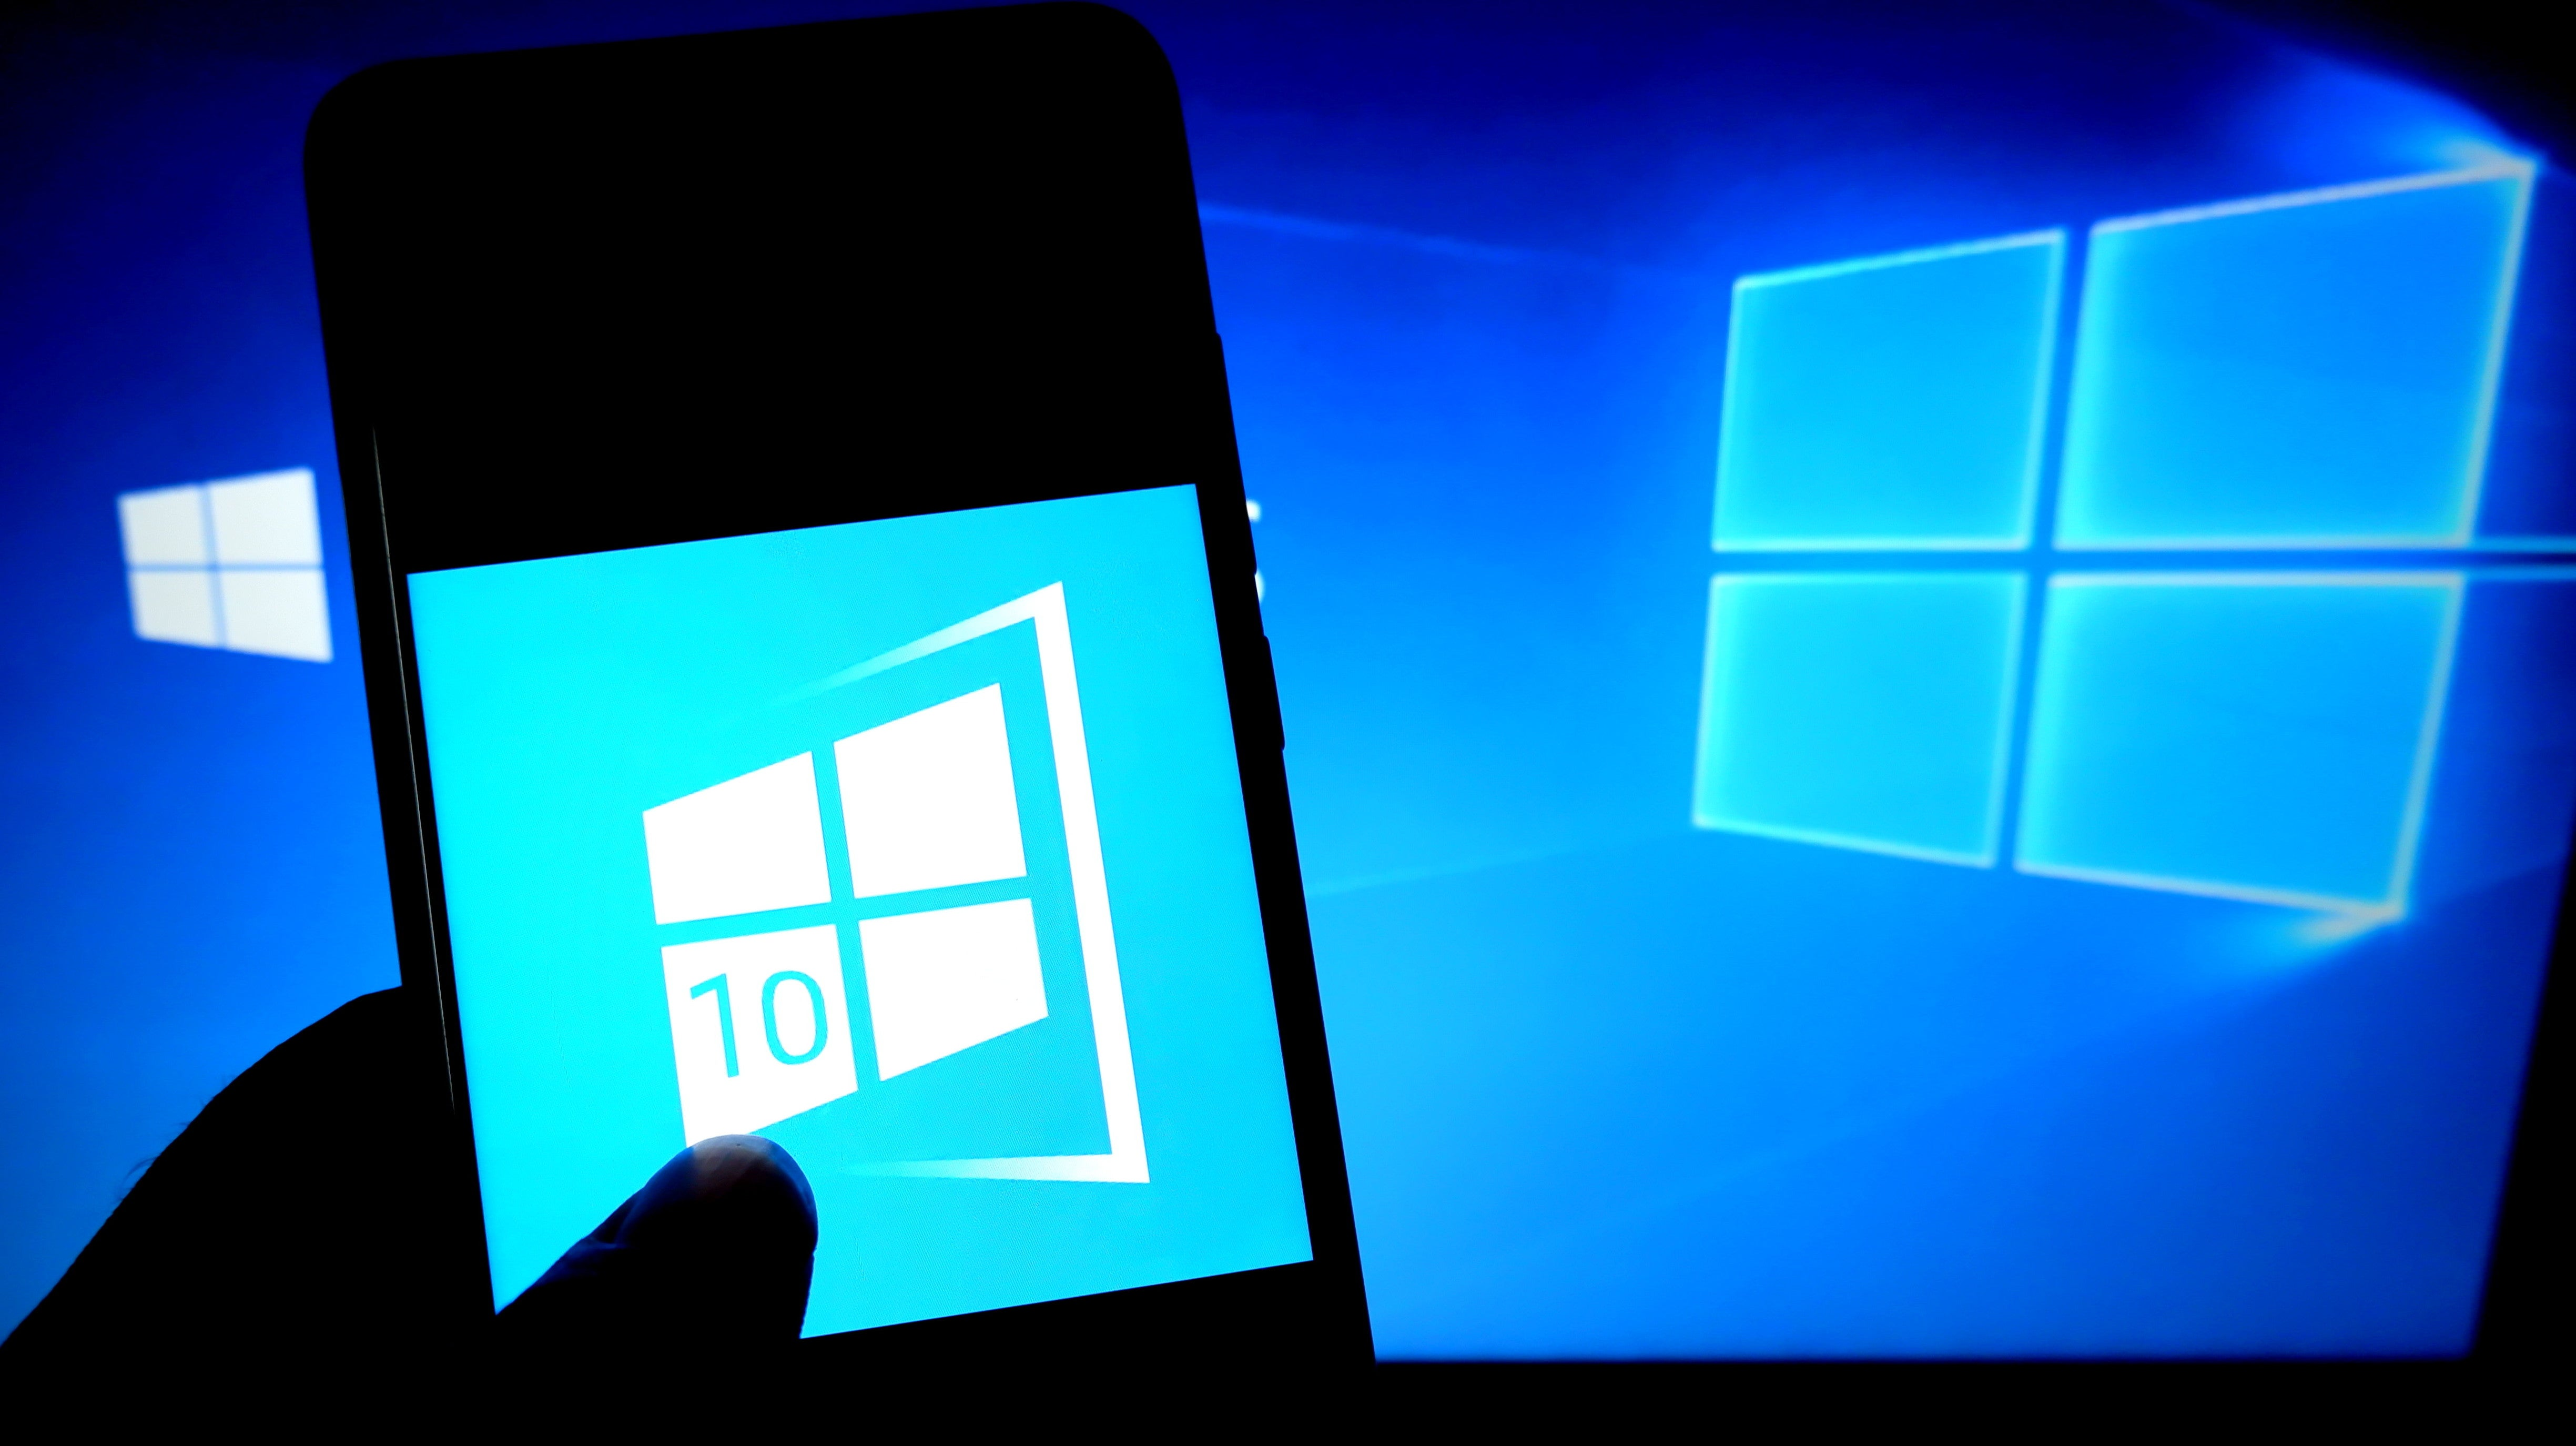 bug feature patch troubleshooting update windows